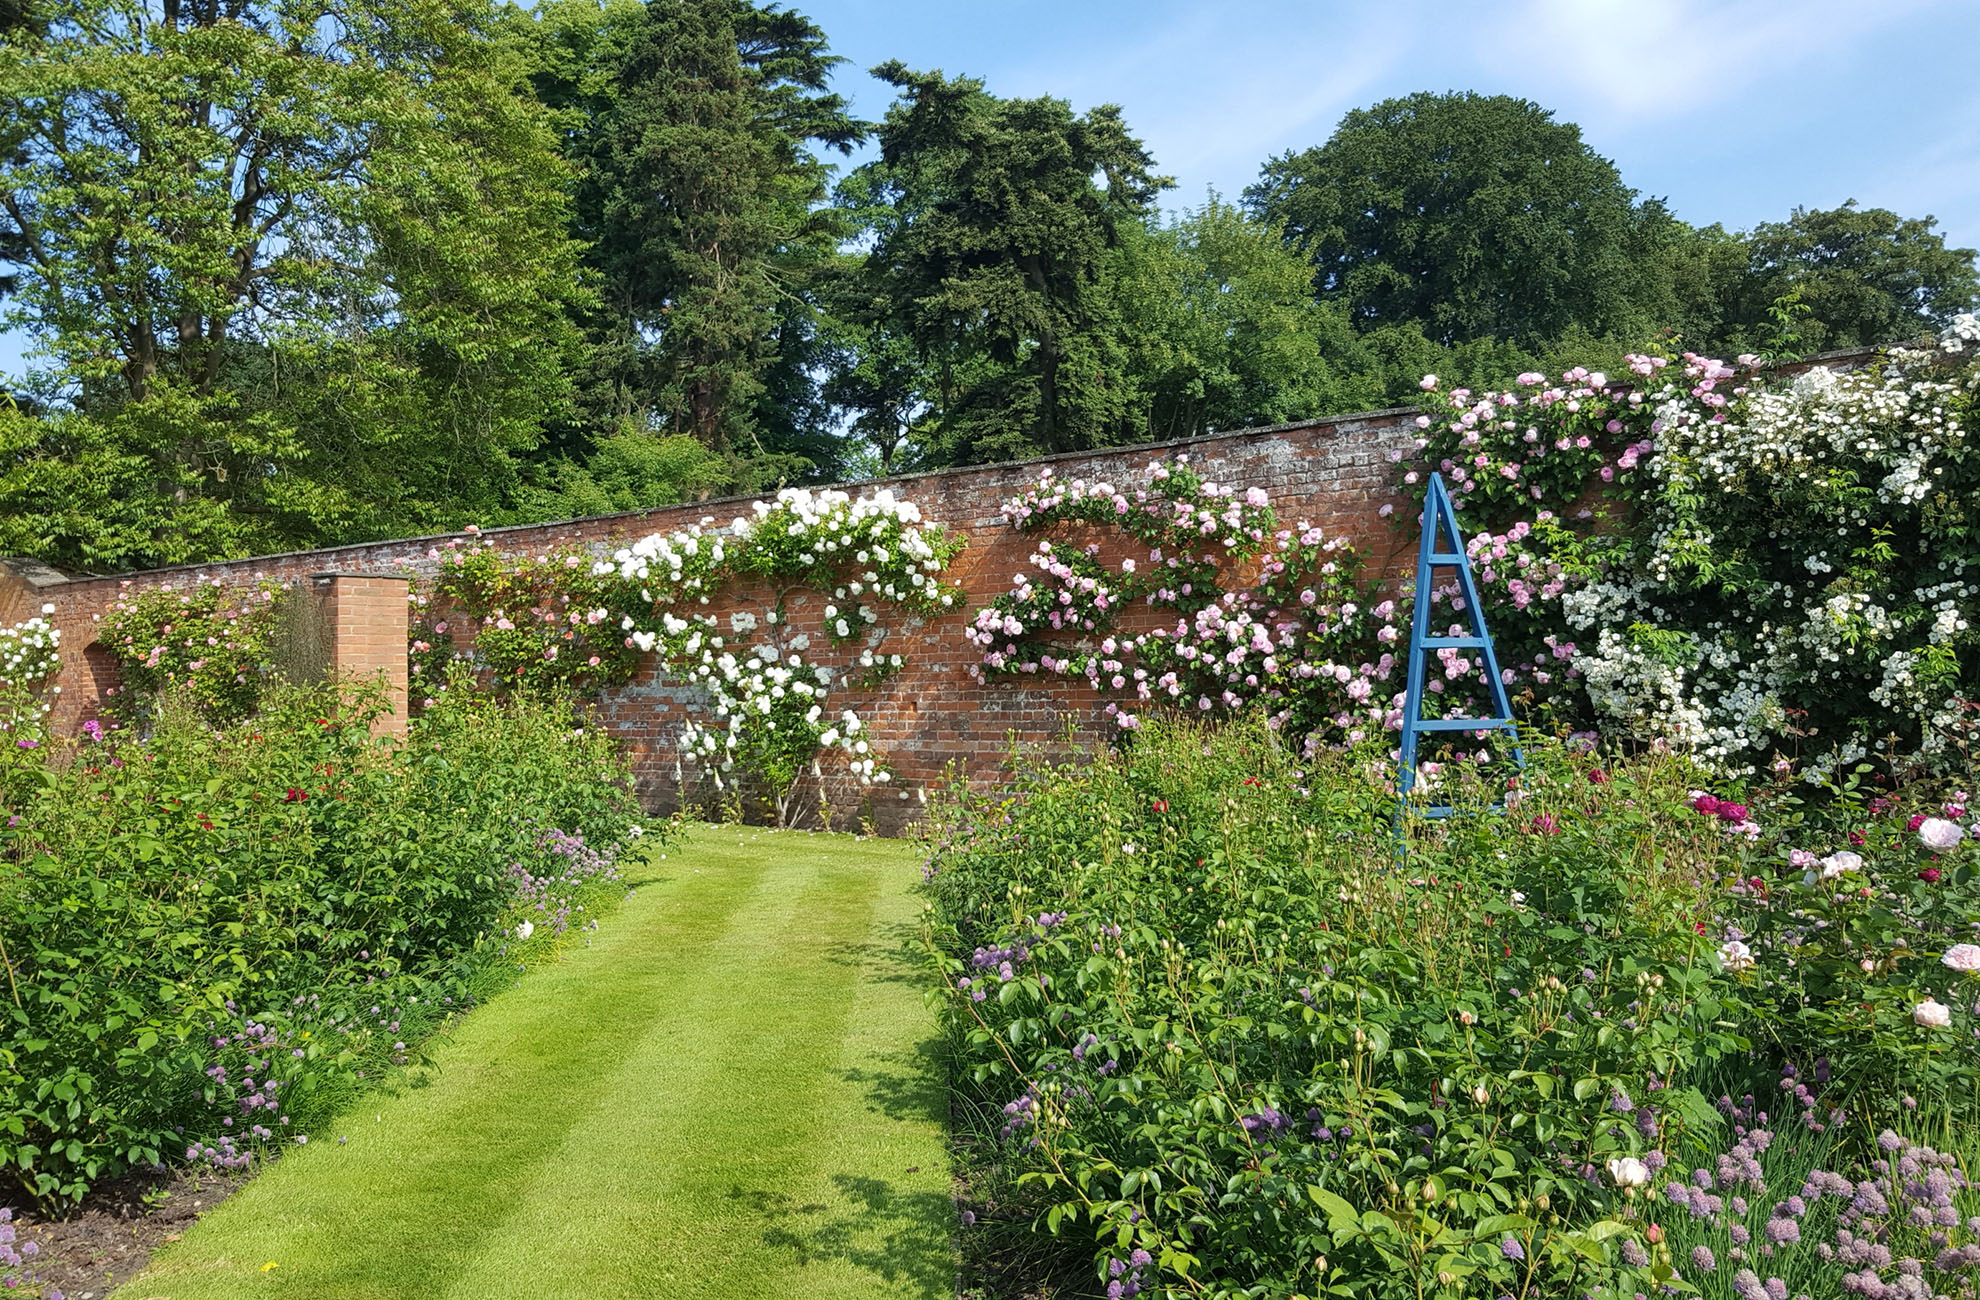 The Walled Gardens at Combermere Abbey look spectacular In the summer sunshine